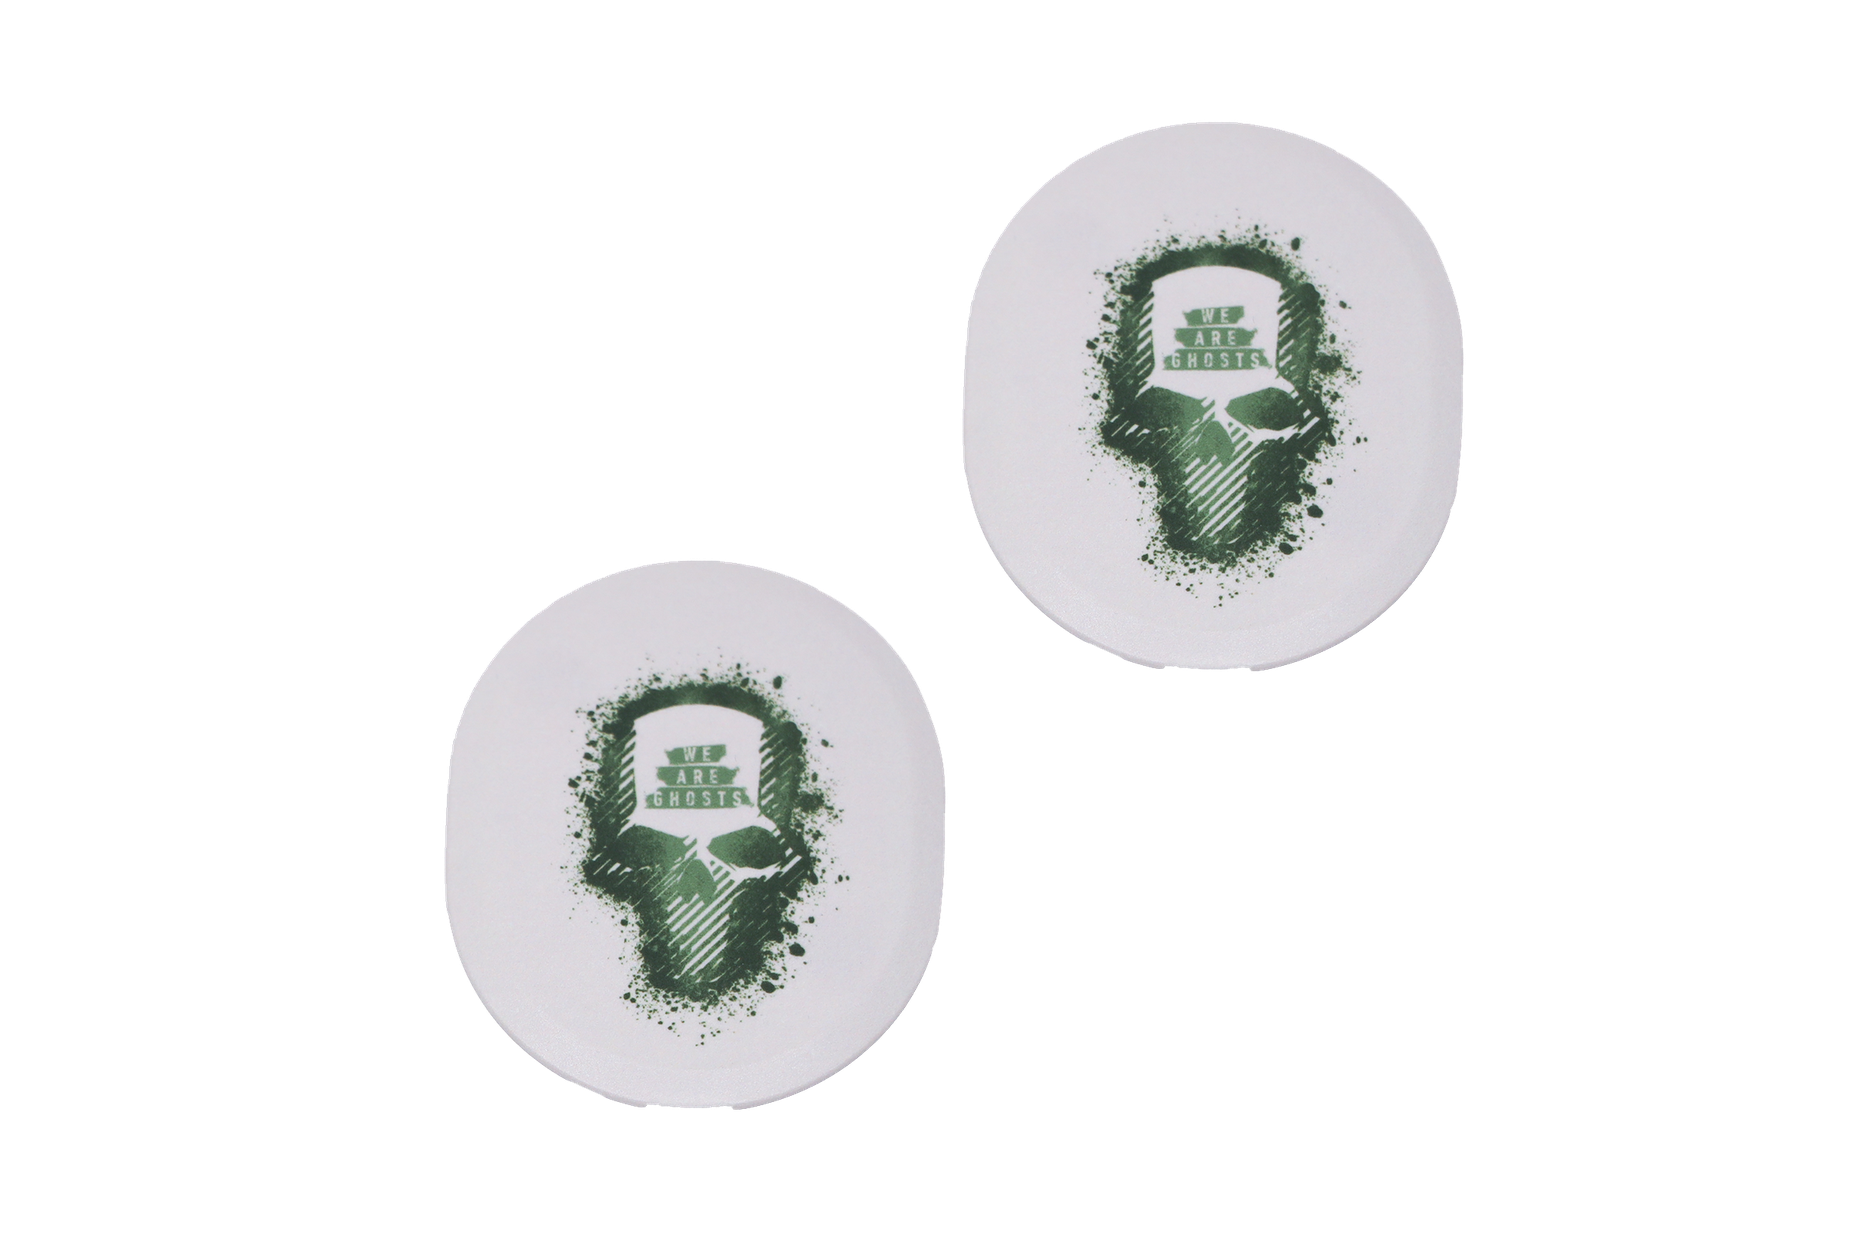 Two Arctis Pro -  Hi-res Profesyonel Gamer Kulaklık speaker plates designed with the Ghost Recon style